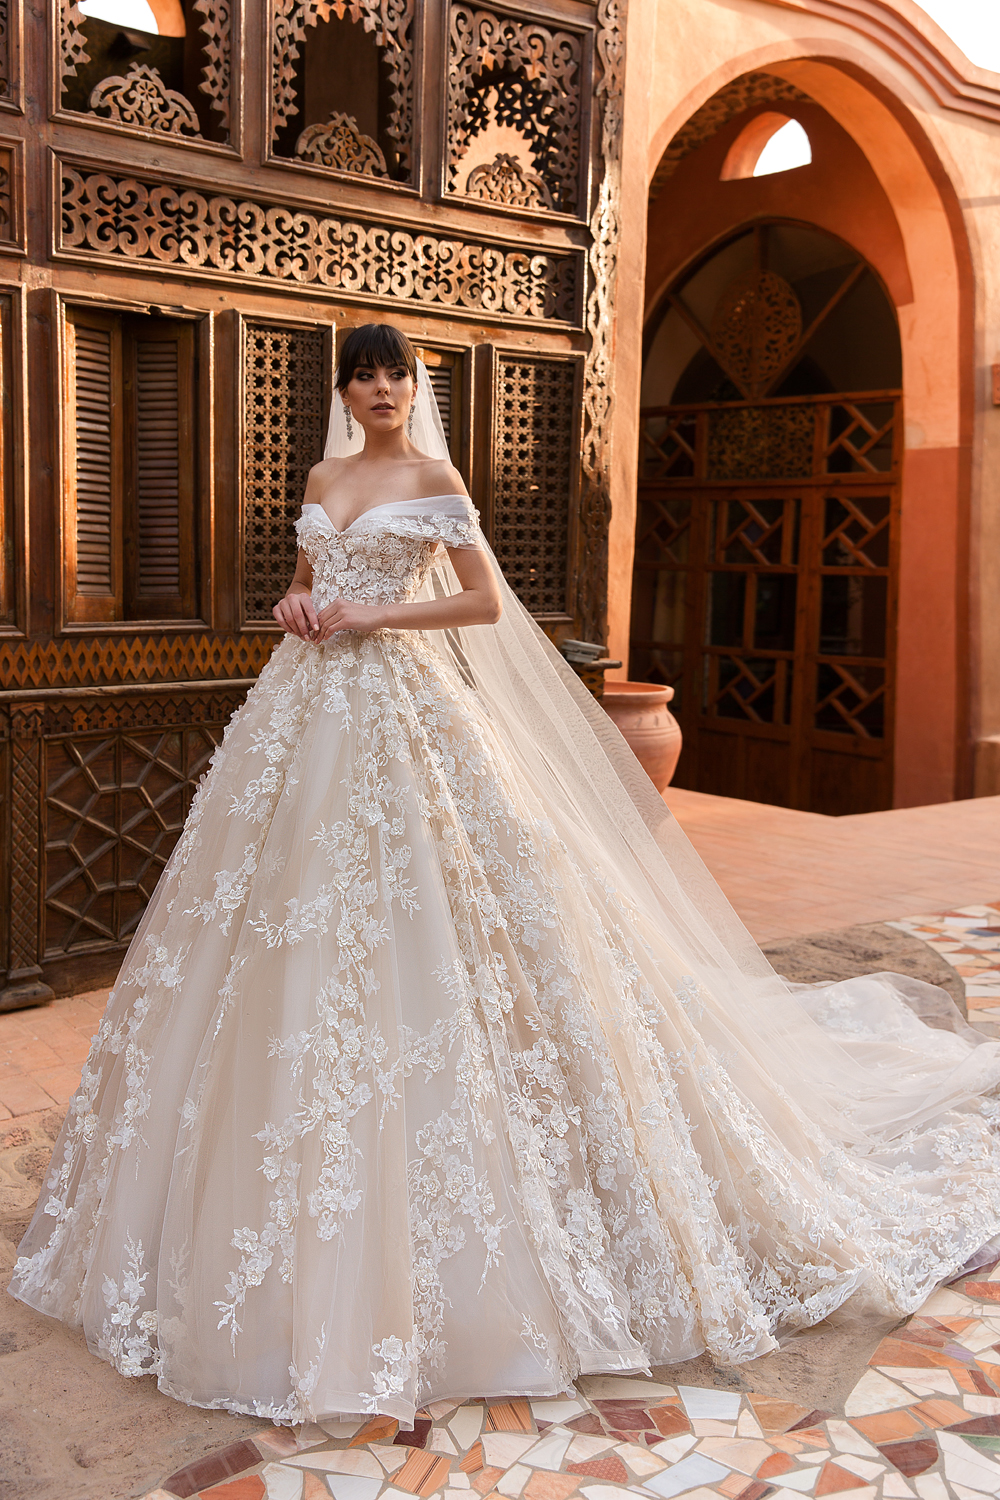 2019 Exquisite Lace Wedding Dresses Off Shoulder Custom Made Charming Moroccan Wedding Bridal Gowns With Chapel Long Veil